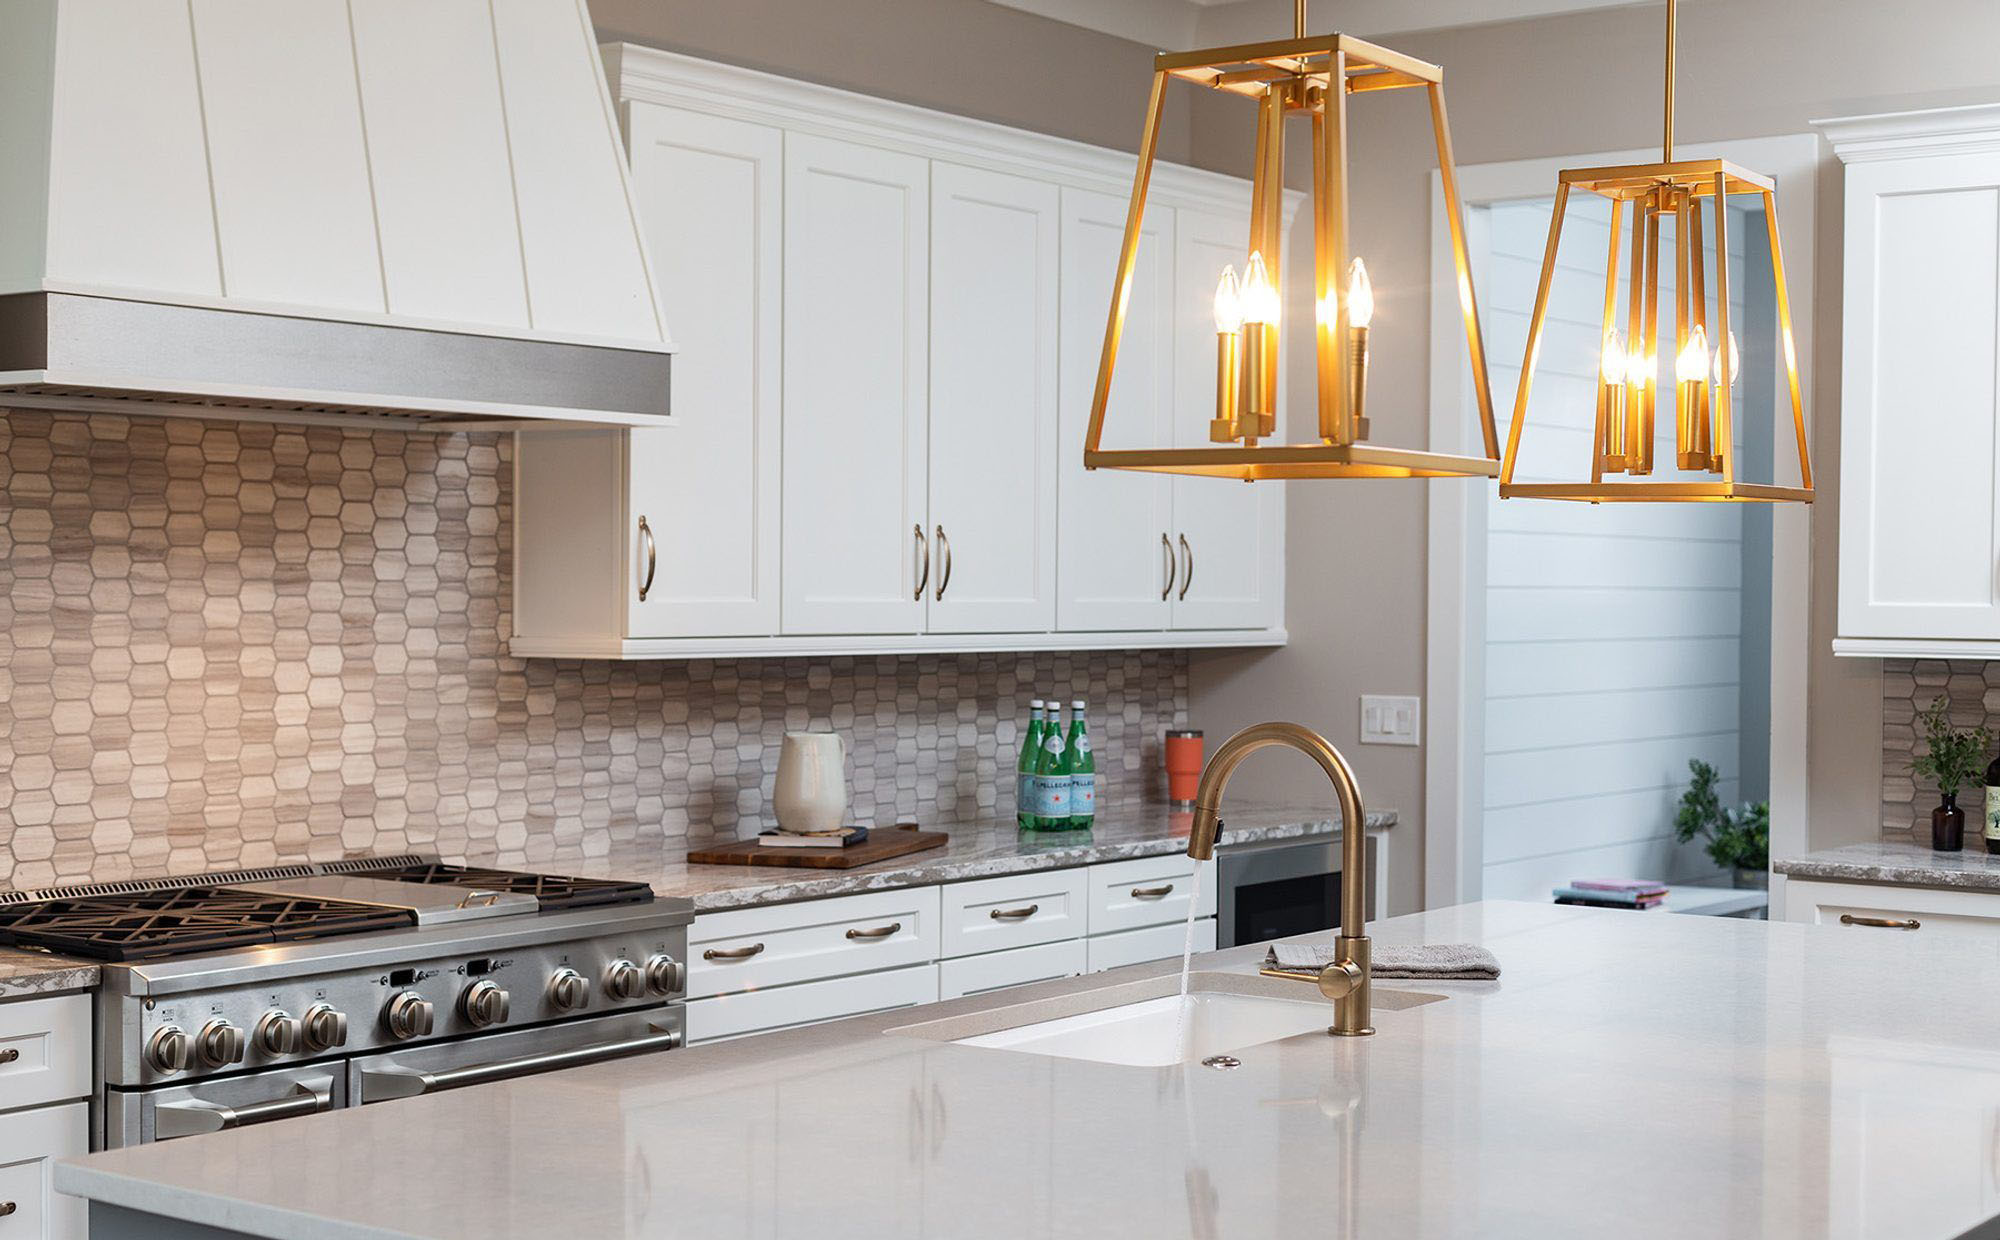 White kitchen cabinets with gold faucets, hardware and lighting.